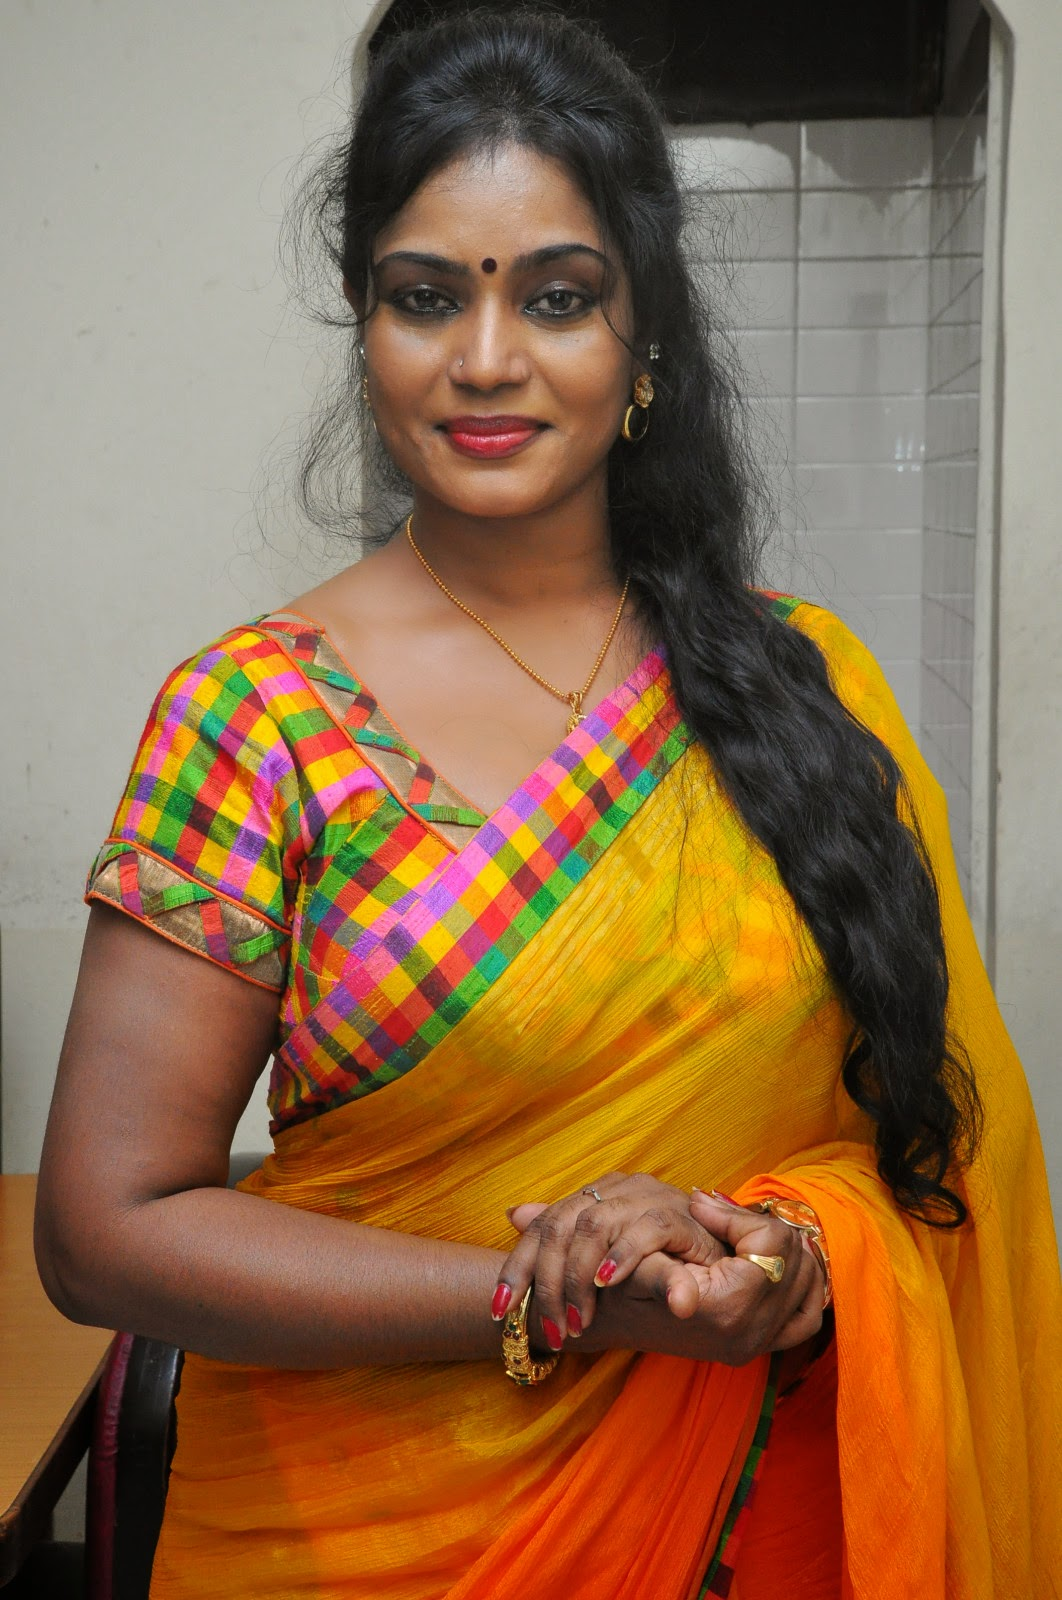 ... at Andamaina maya movie audio release,Jayavani yellow saree new photos